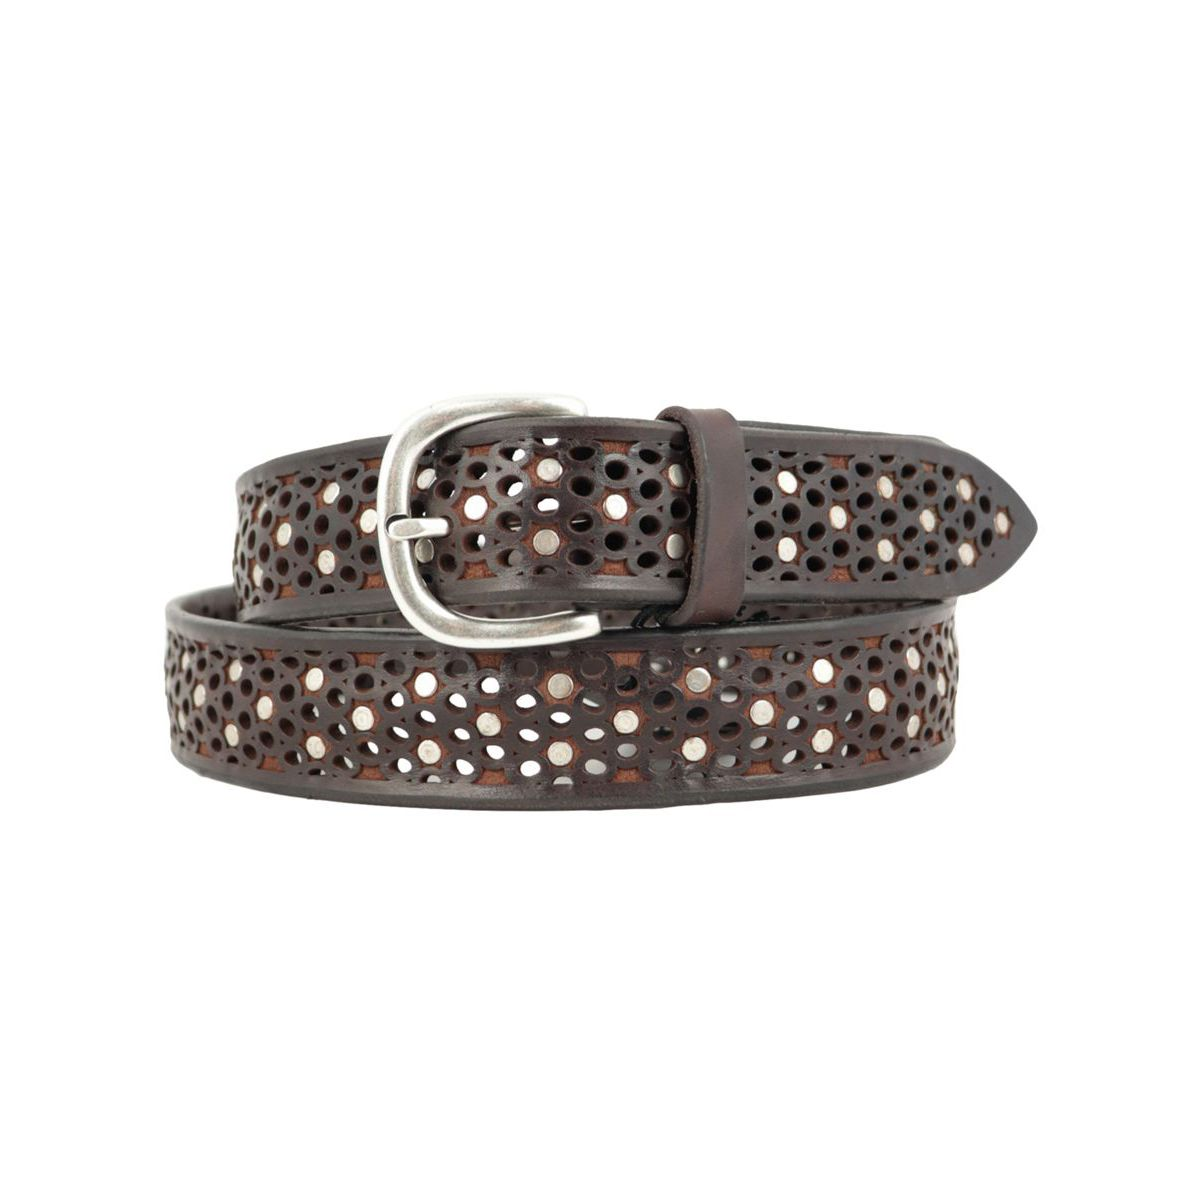 Perforated leather belt with stud applications Moro Orciani